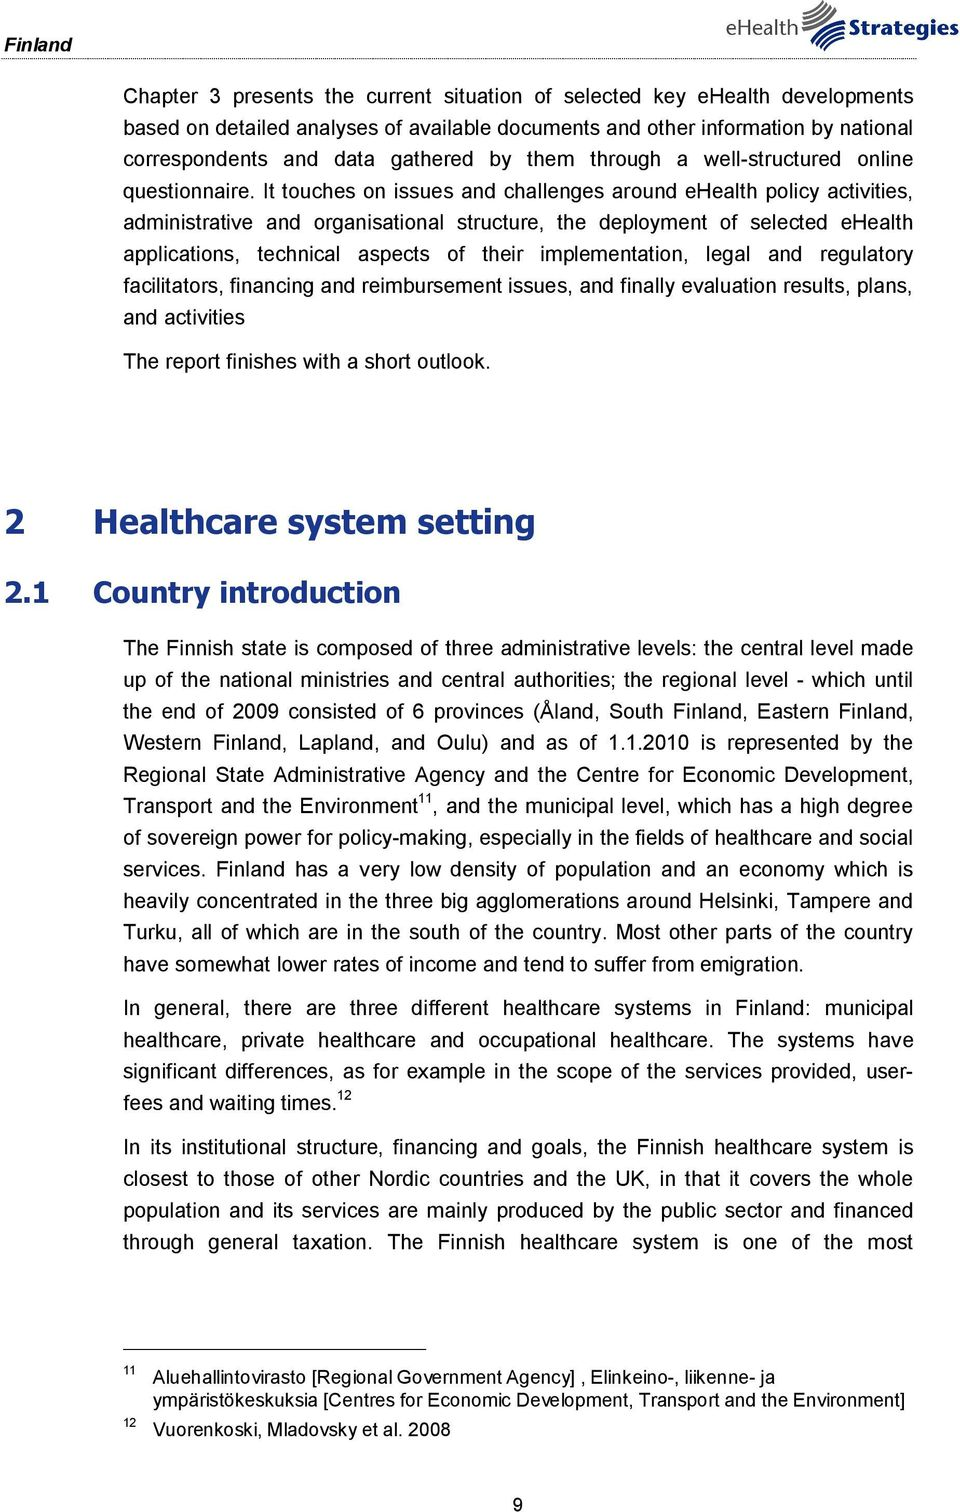 It touches on issues and challenges around ehealth policy activities, administrative and organisational structure, the deployment of selected ehealth applications, technical aspects of their